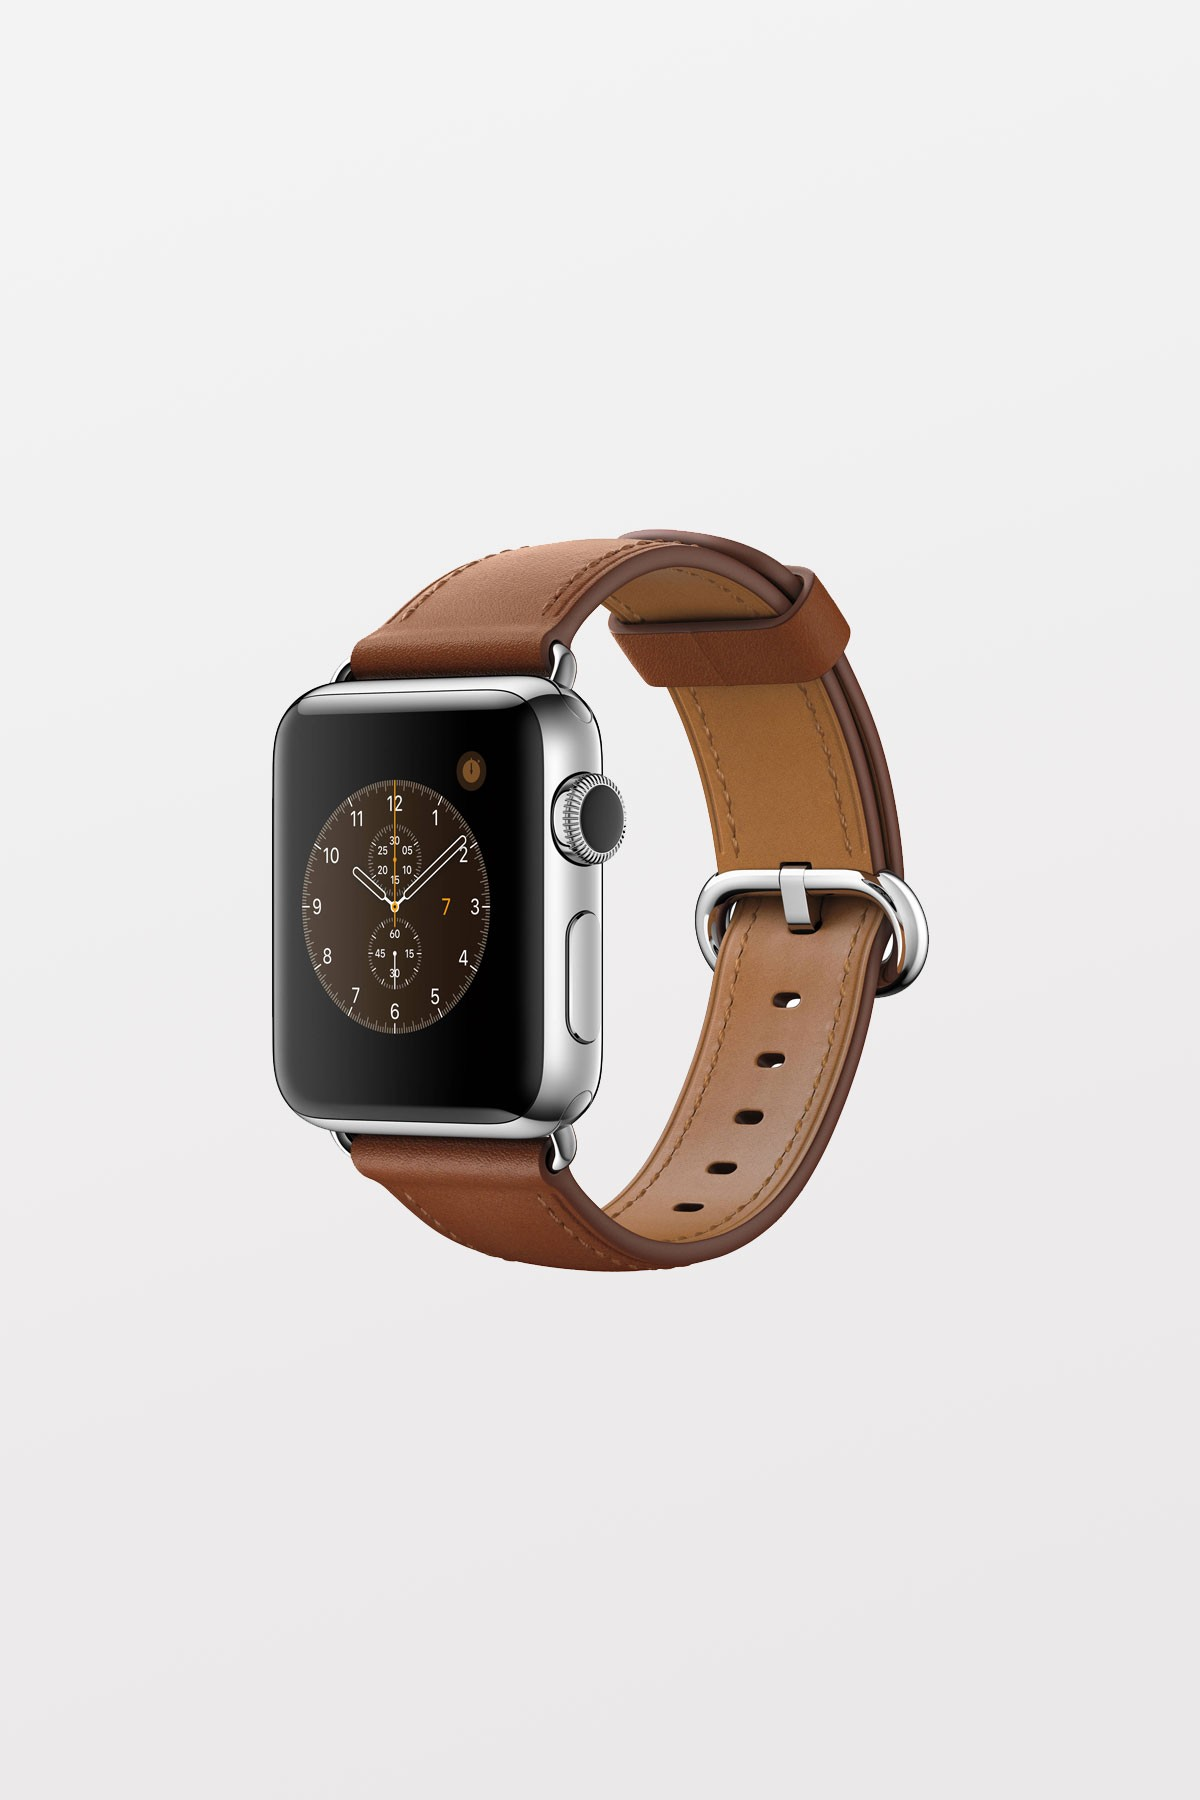 Apple Watch 38mm - Stainless Steel - Saddle Brown Classic Buckle - Refurbished